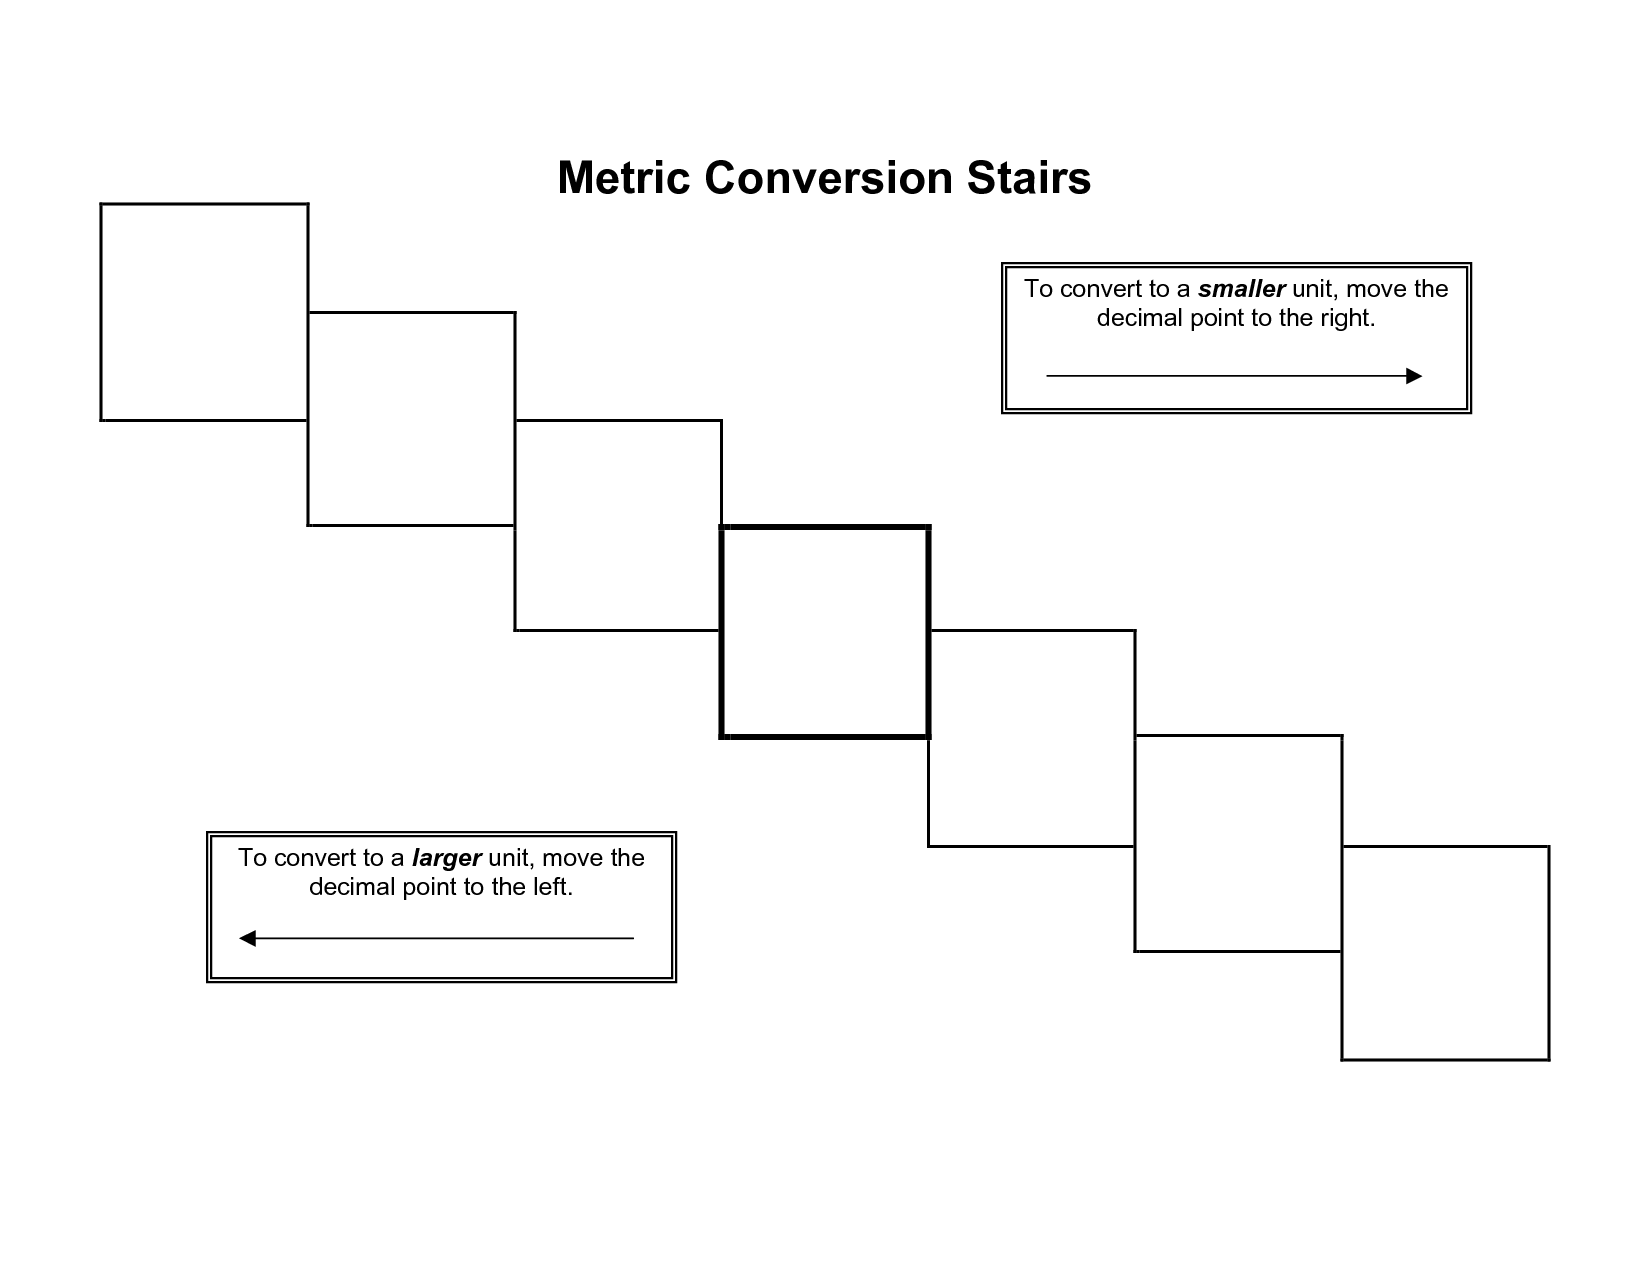 Conversion chart for metric system metric conversion stairs conversion chart for metric system metric conversion stairs nvjuhfo Choice Image